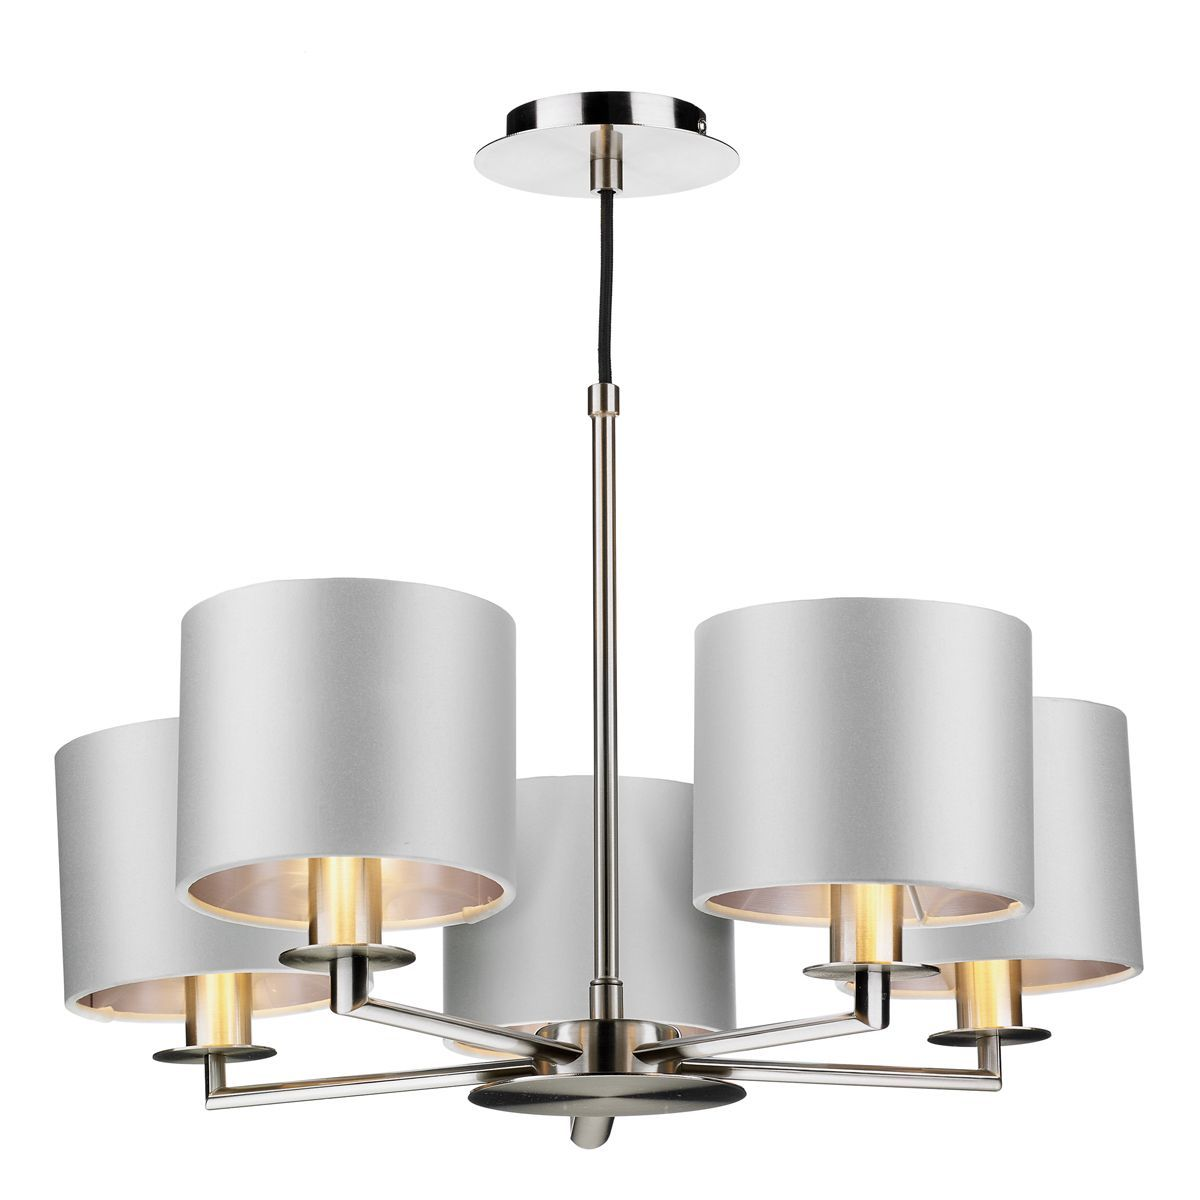 Homerton 5 Light Pendant In Satin Nickel - ID 8680 dis-continued?